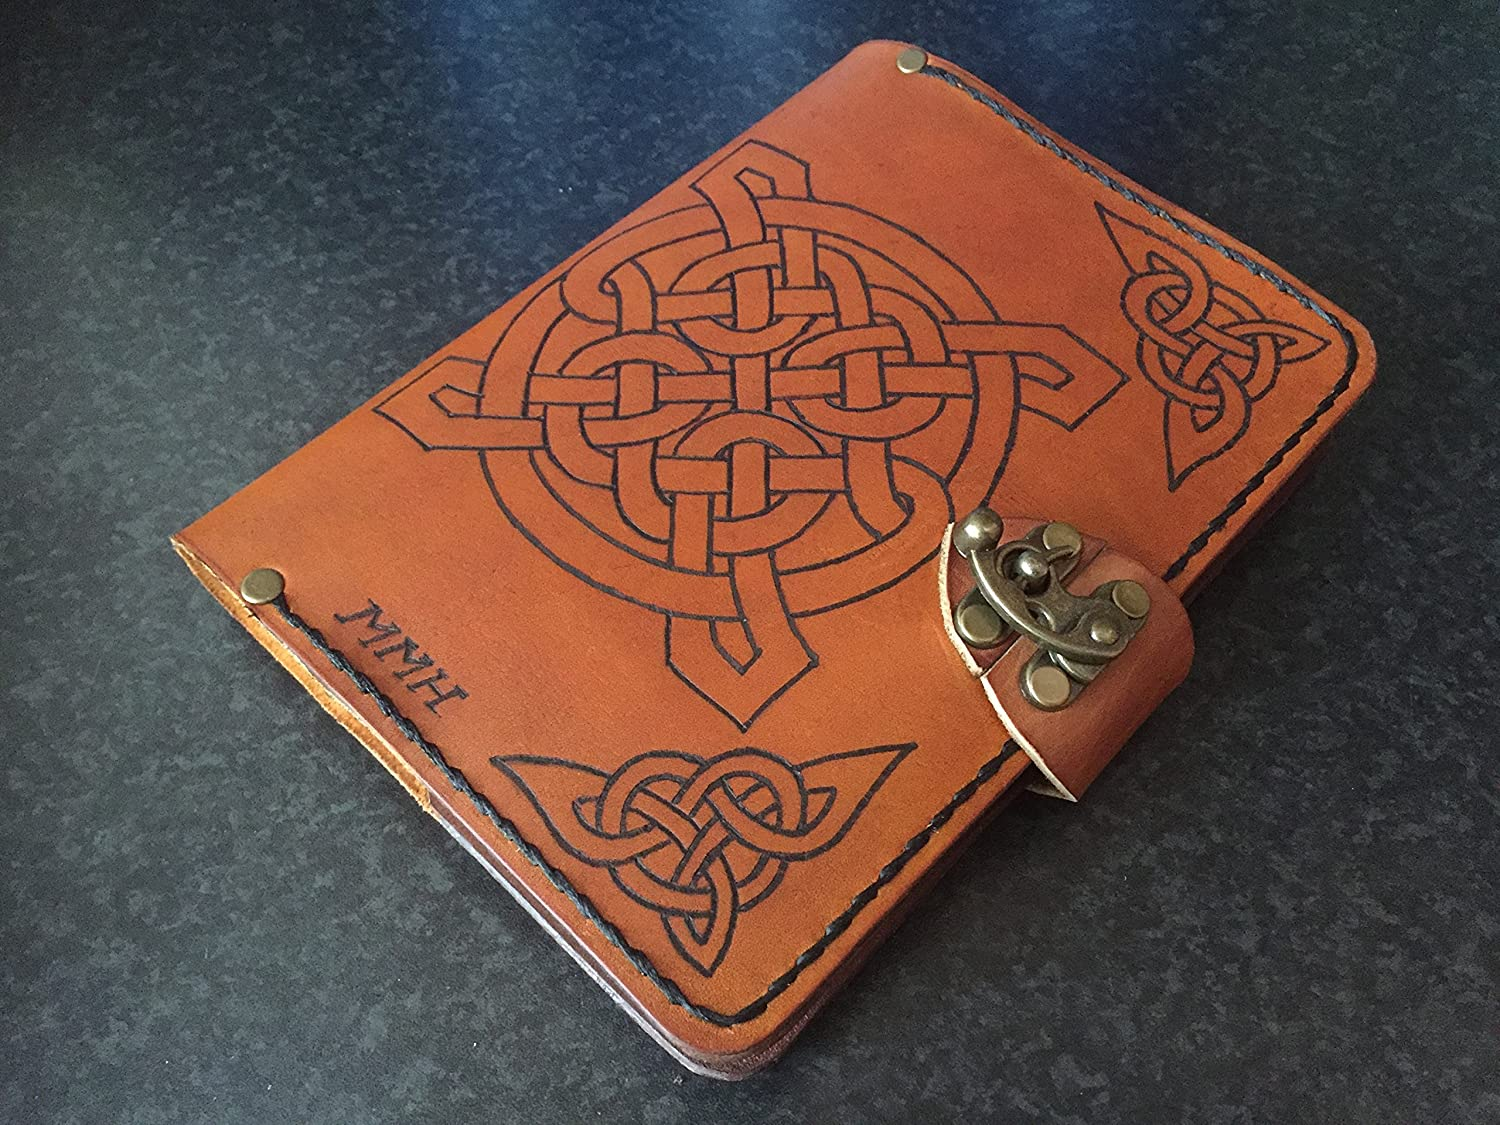 Handmade leather journal,refillable leather journal,personalized leather journal,celtic knots leather journal,leather notebook,distressed leather journal,leather sketchbook